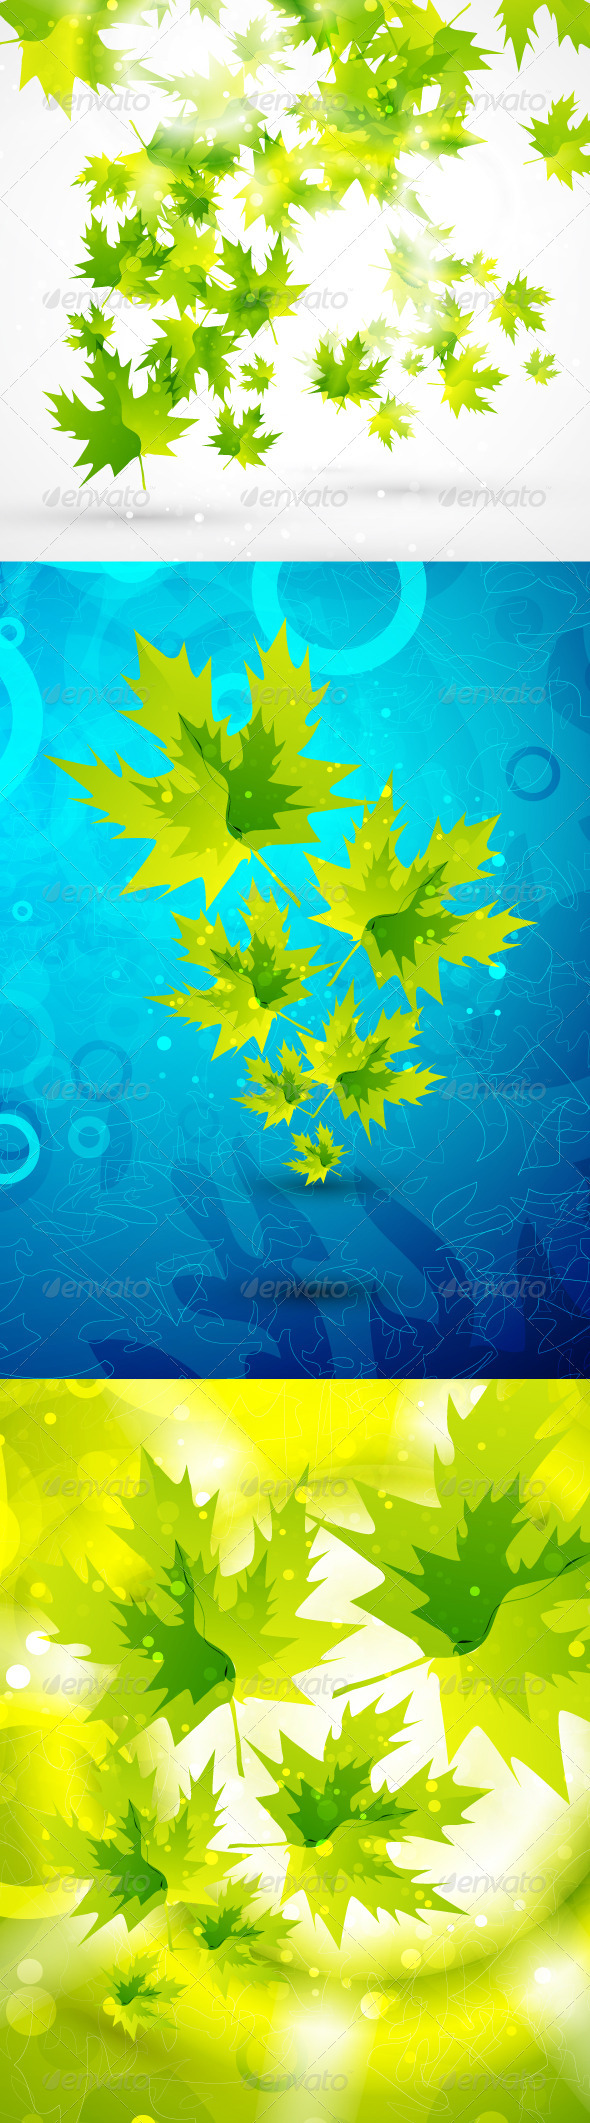 Maple Leaves Shiny Backgrounds - Flowers &amp; Plants Nature